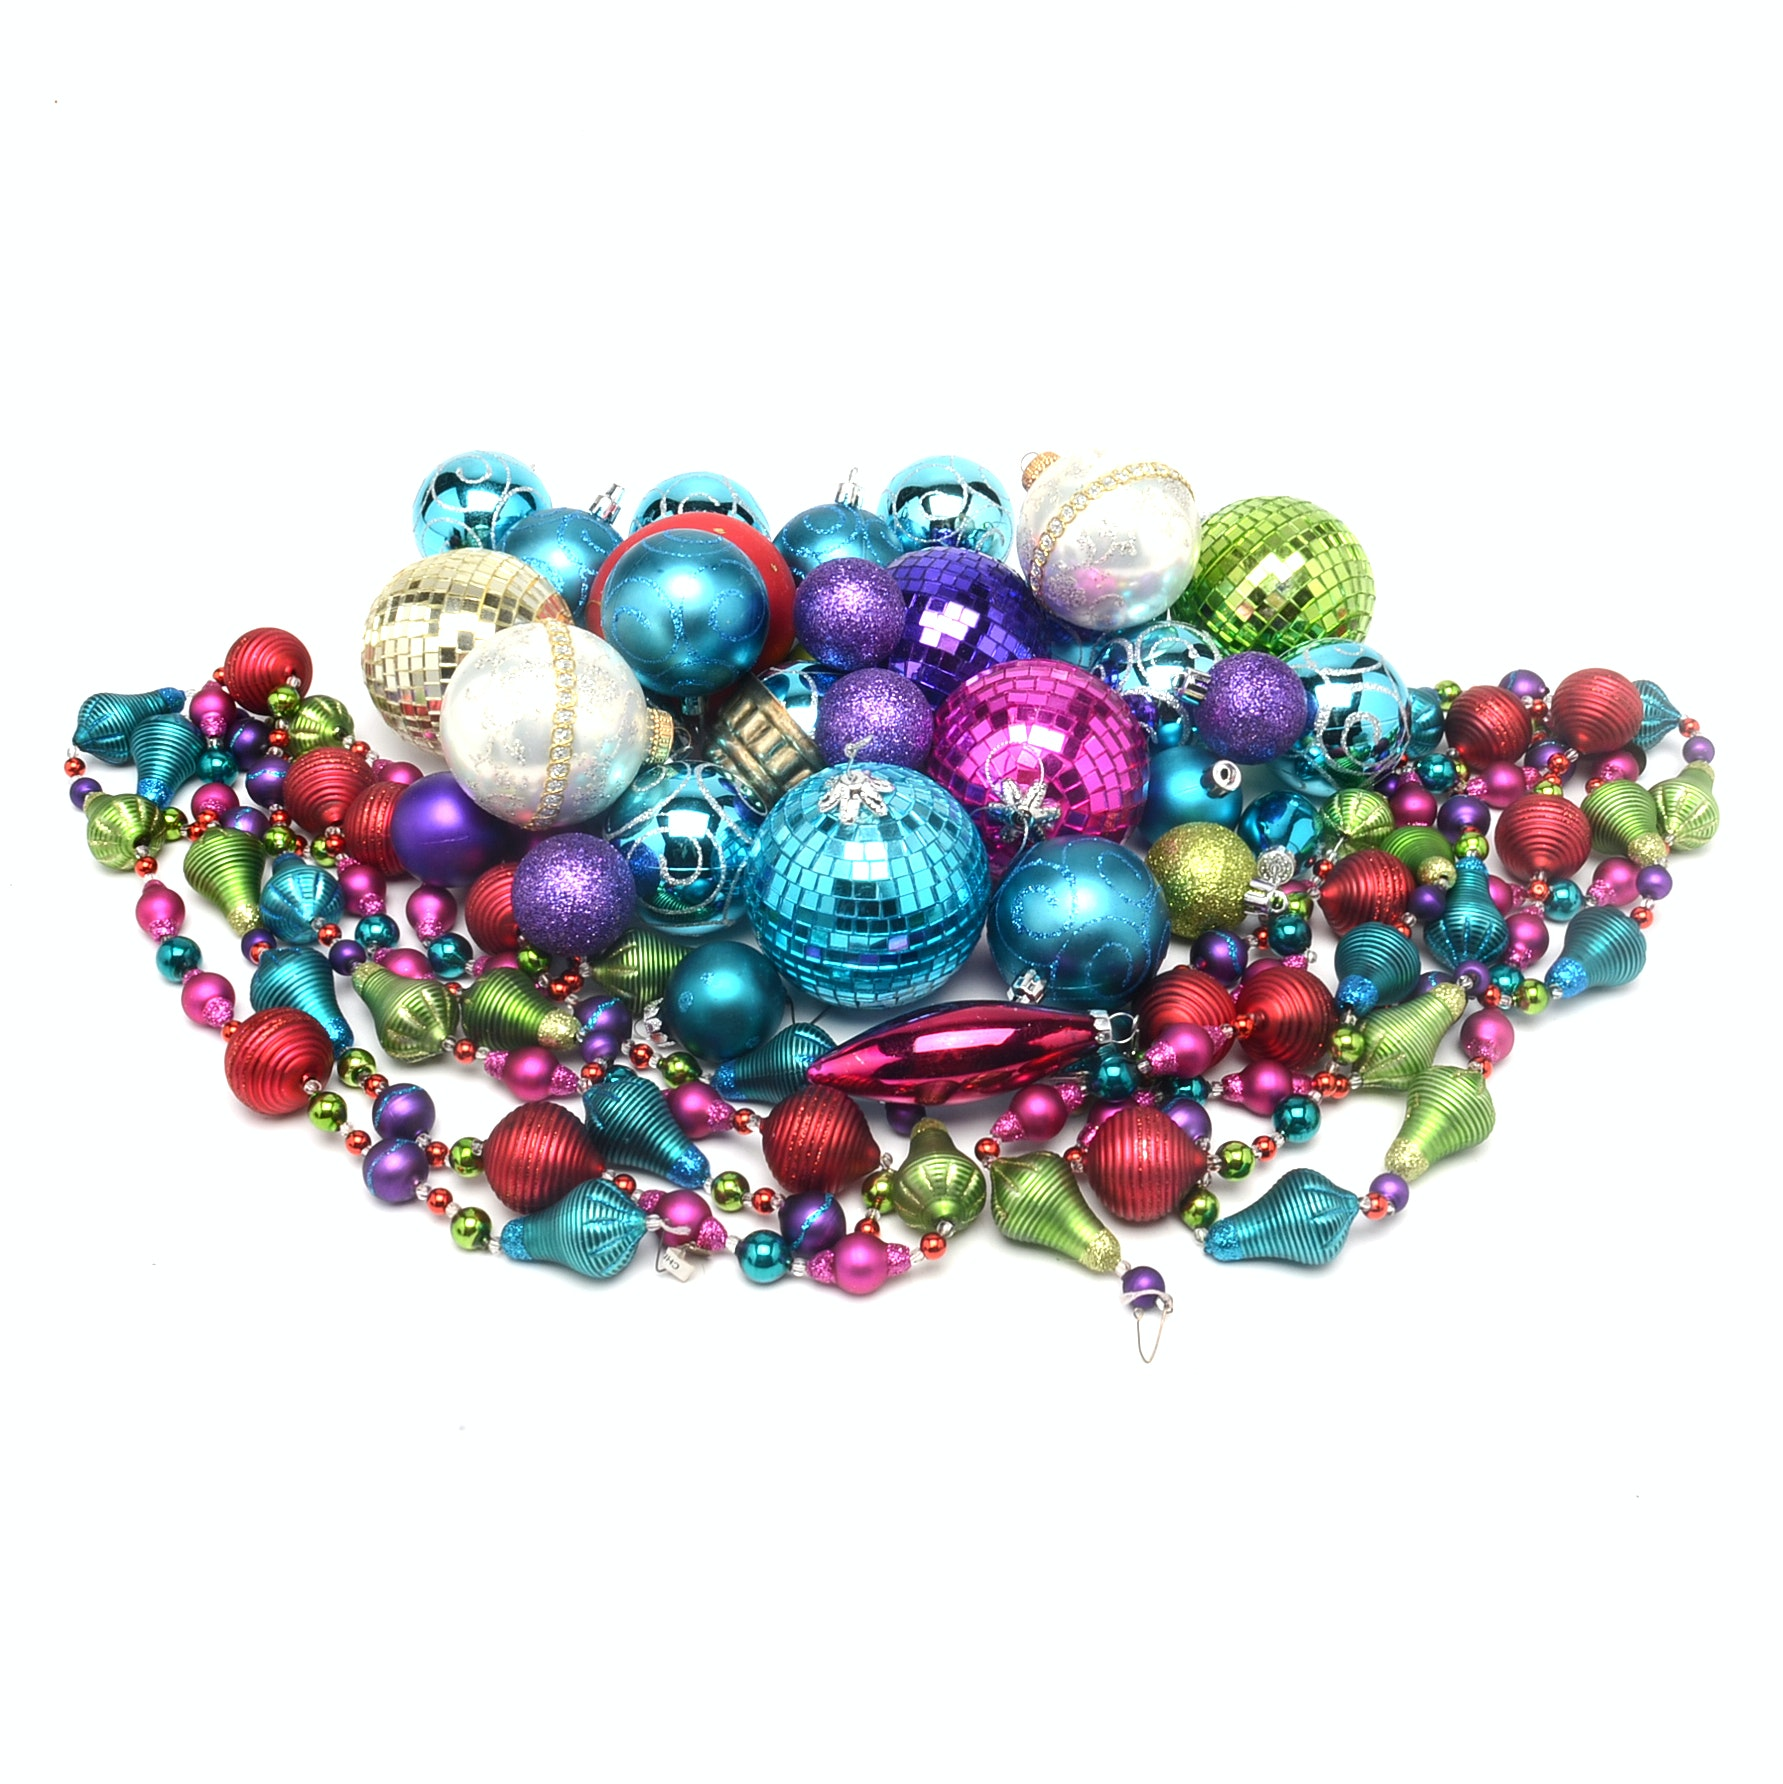 Collection of Contemporary Glass Christmas Ornaments and Garland